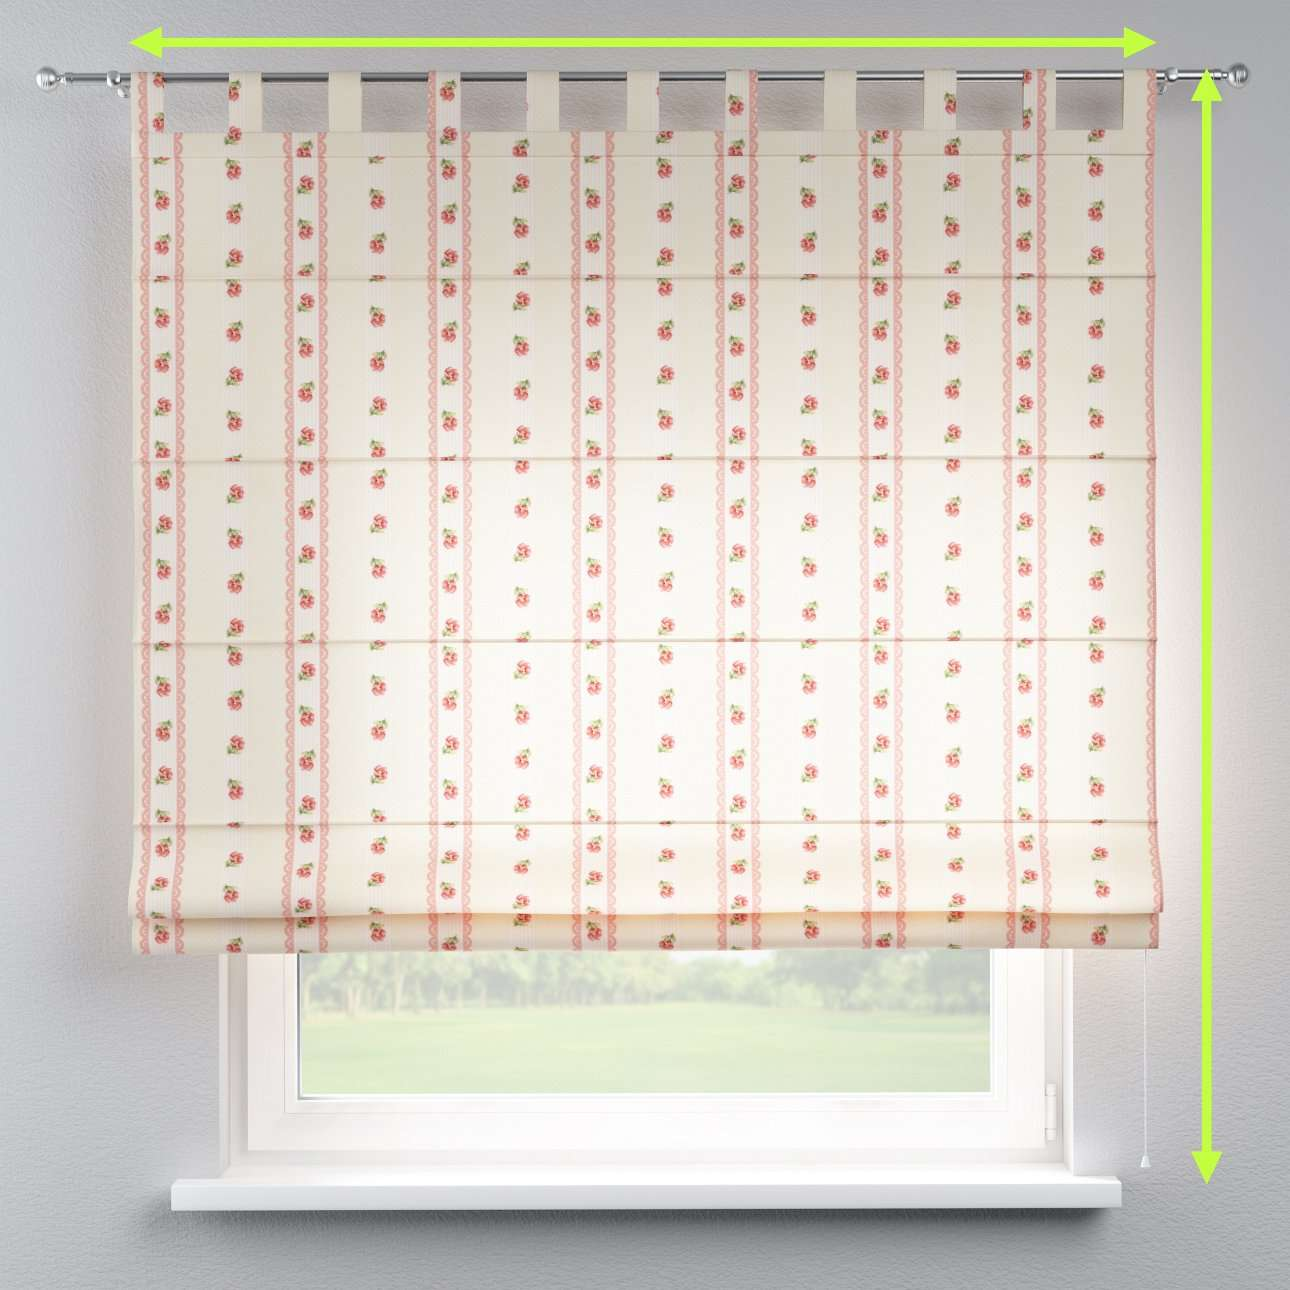 Verona tab top roman blind in collection Ashley, fabric: 137-48